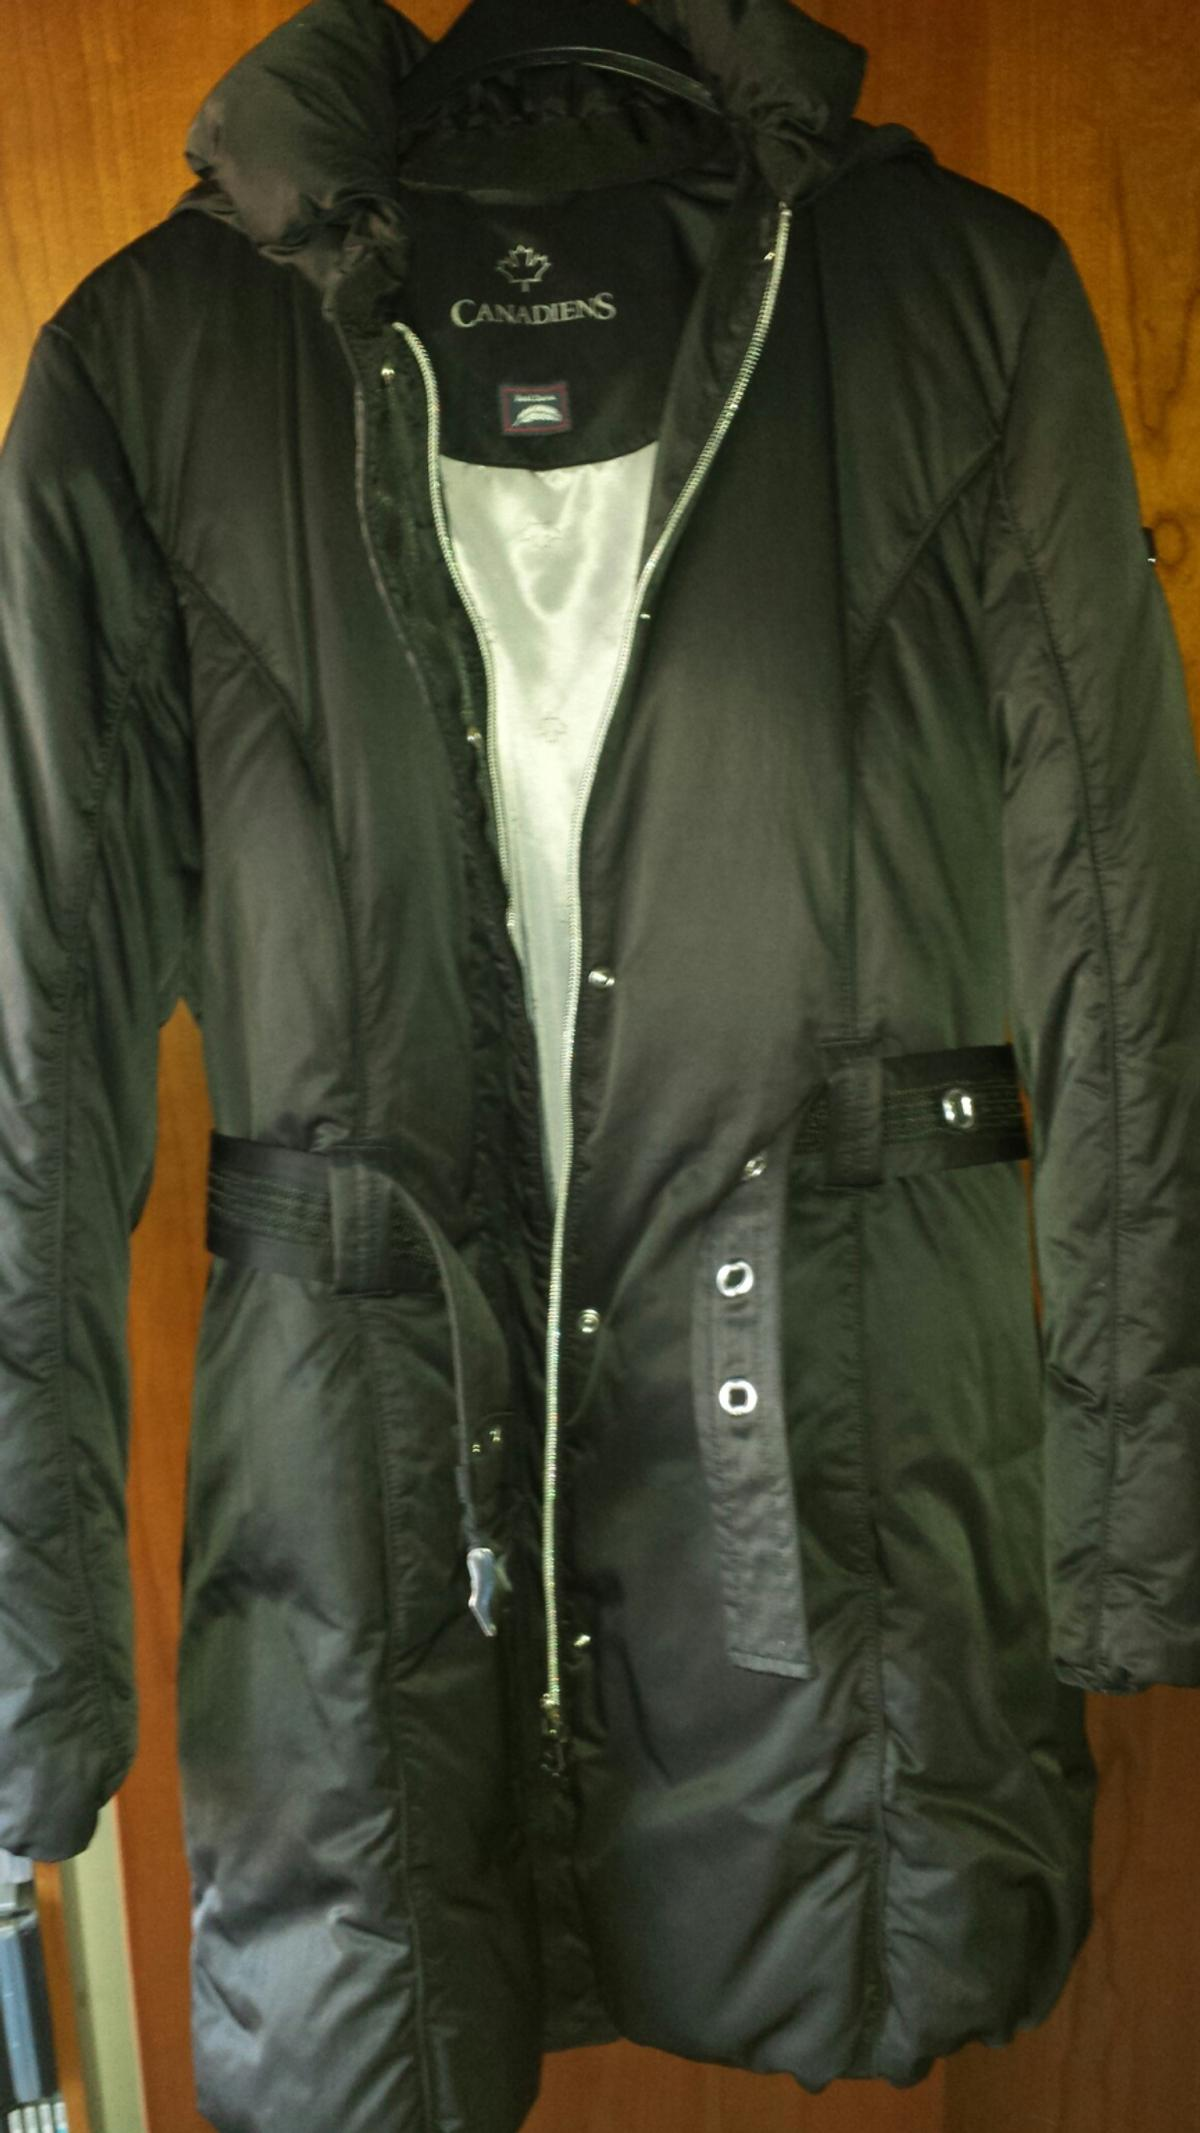 competitive price 47a2a b6c11 Parka Canadiens in 30175 Venezia for €280.00 for sale | Shpock